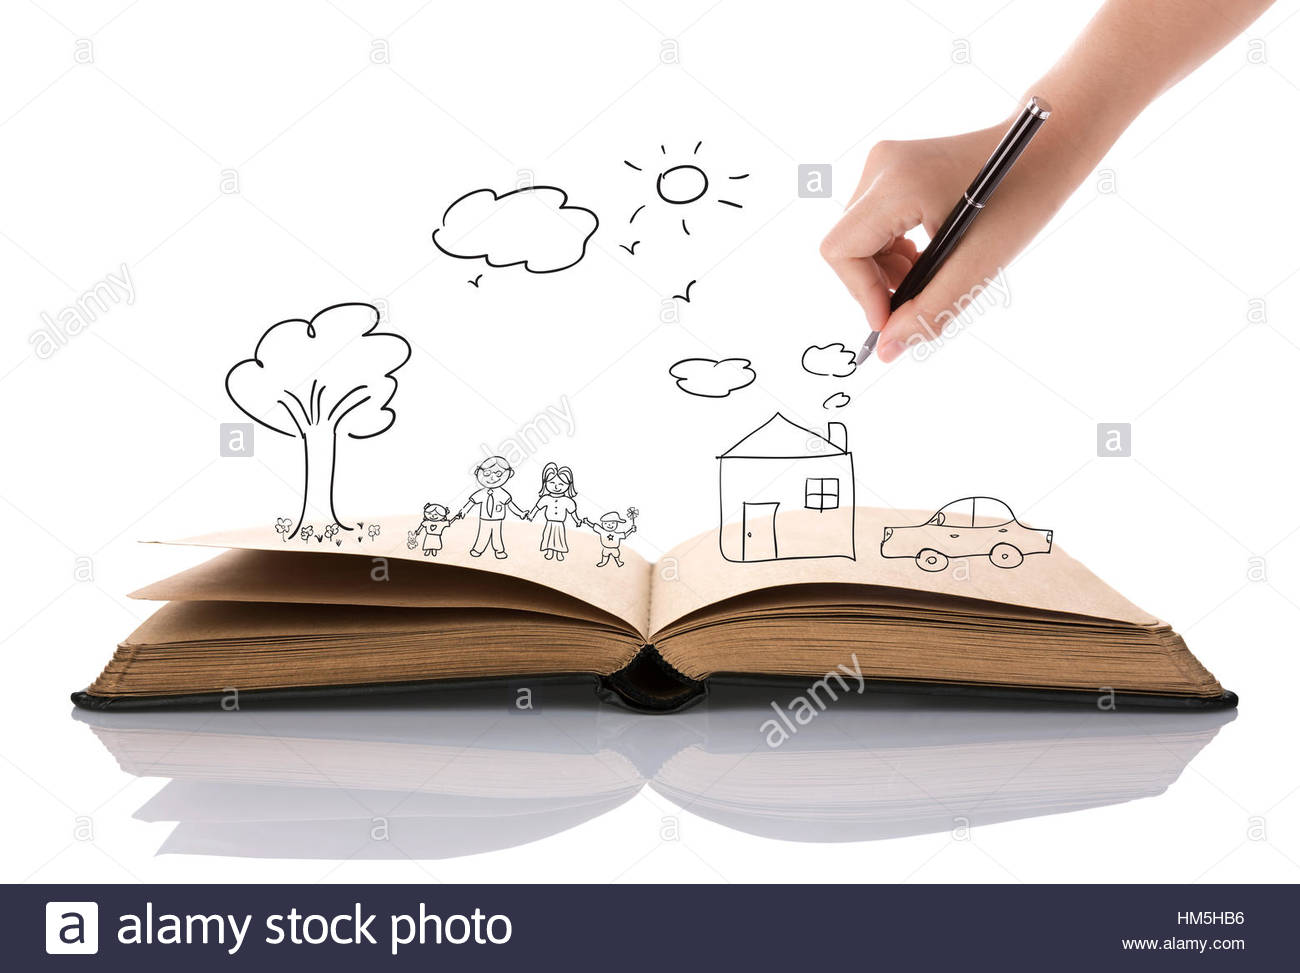 1300x973 Hand Draw In Open Book Of Lovely Family Stock Photo 132889098